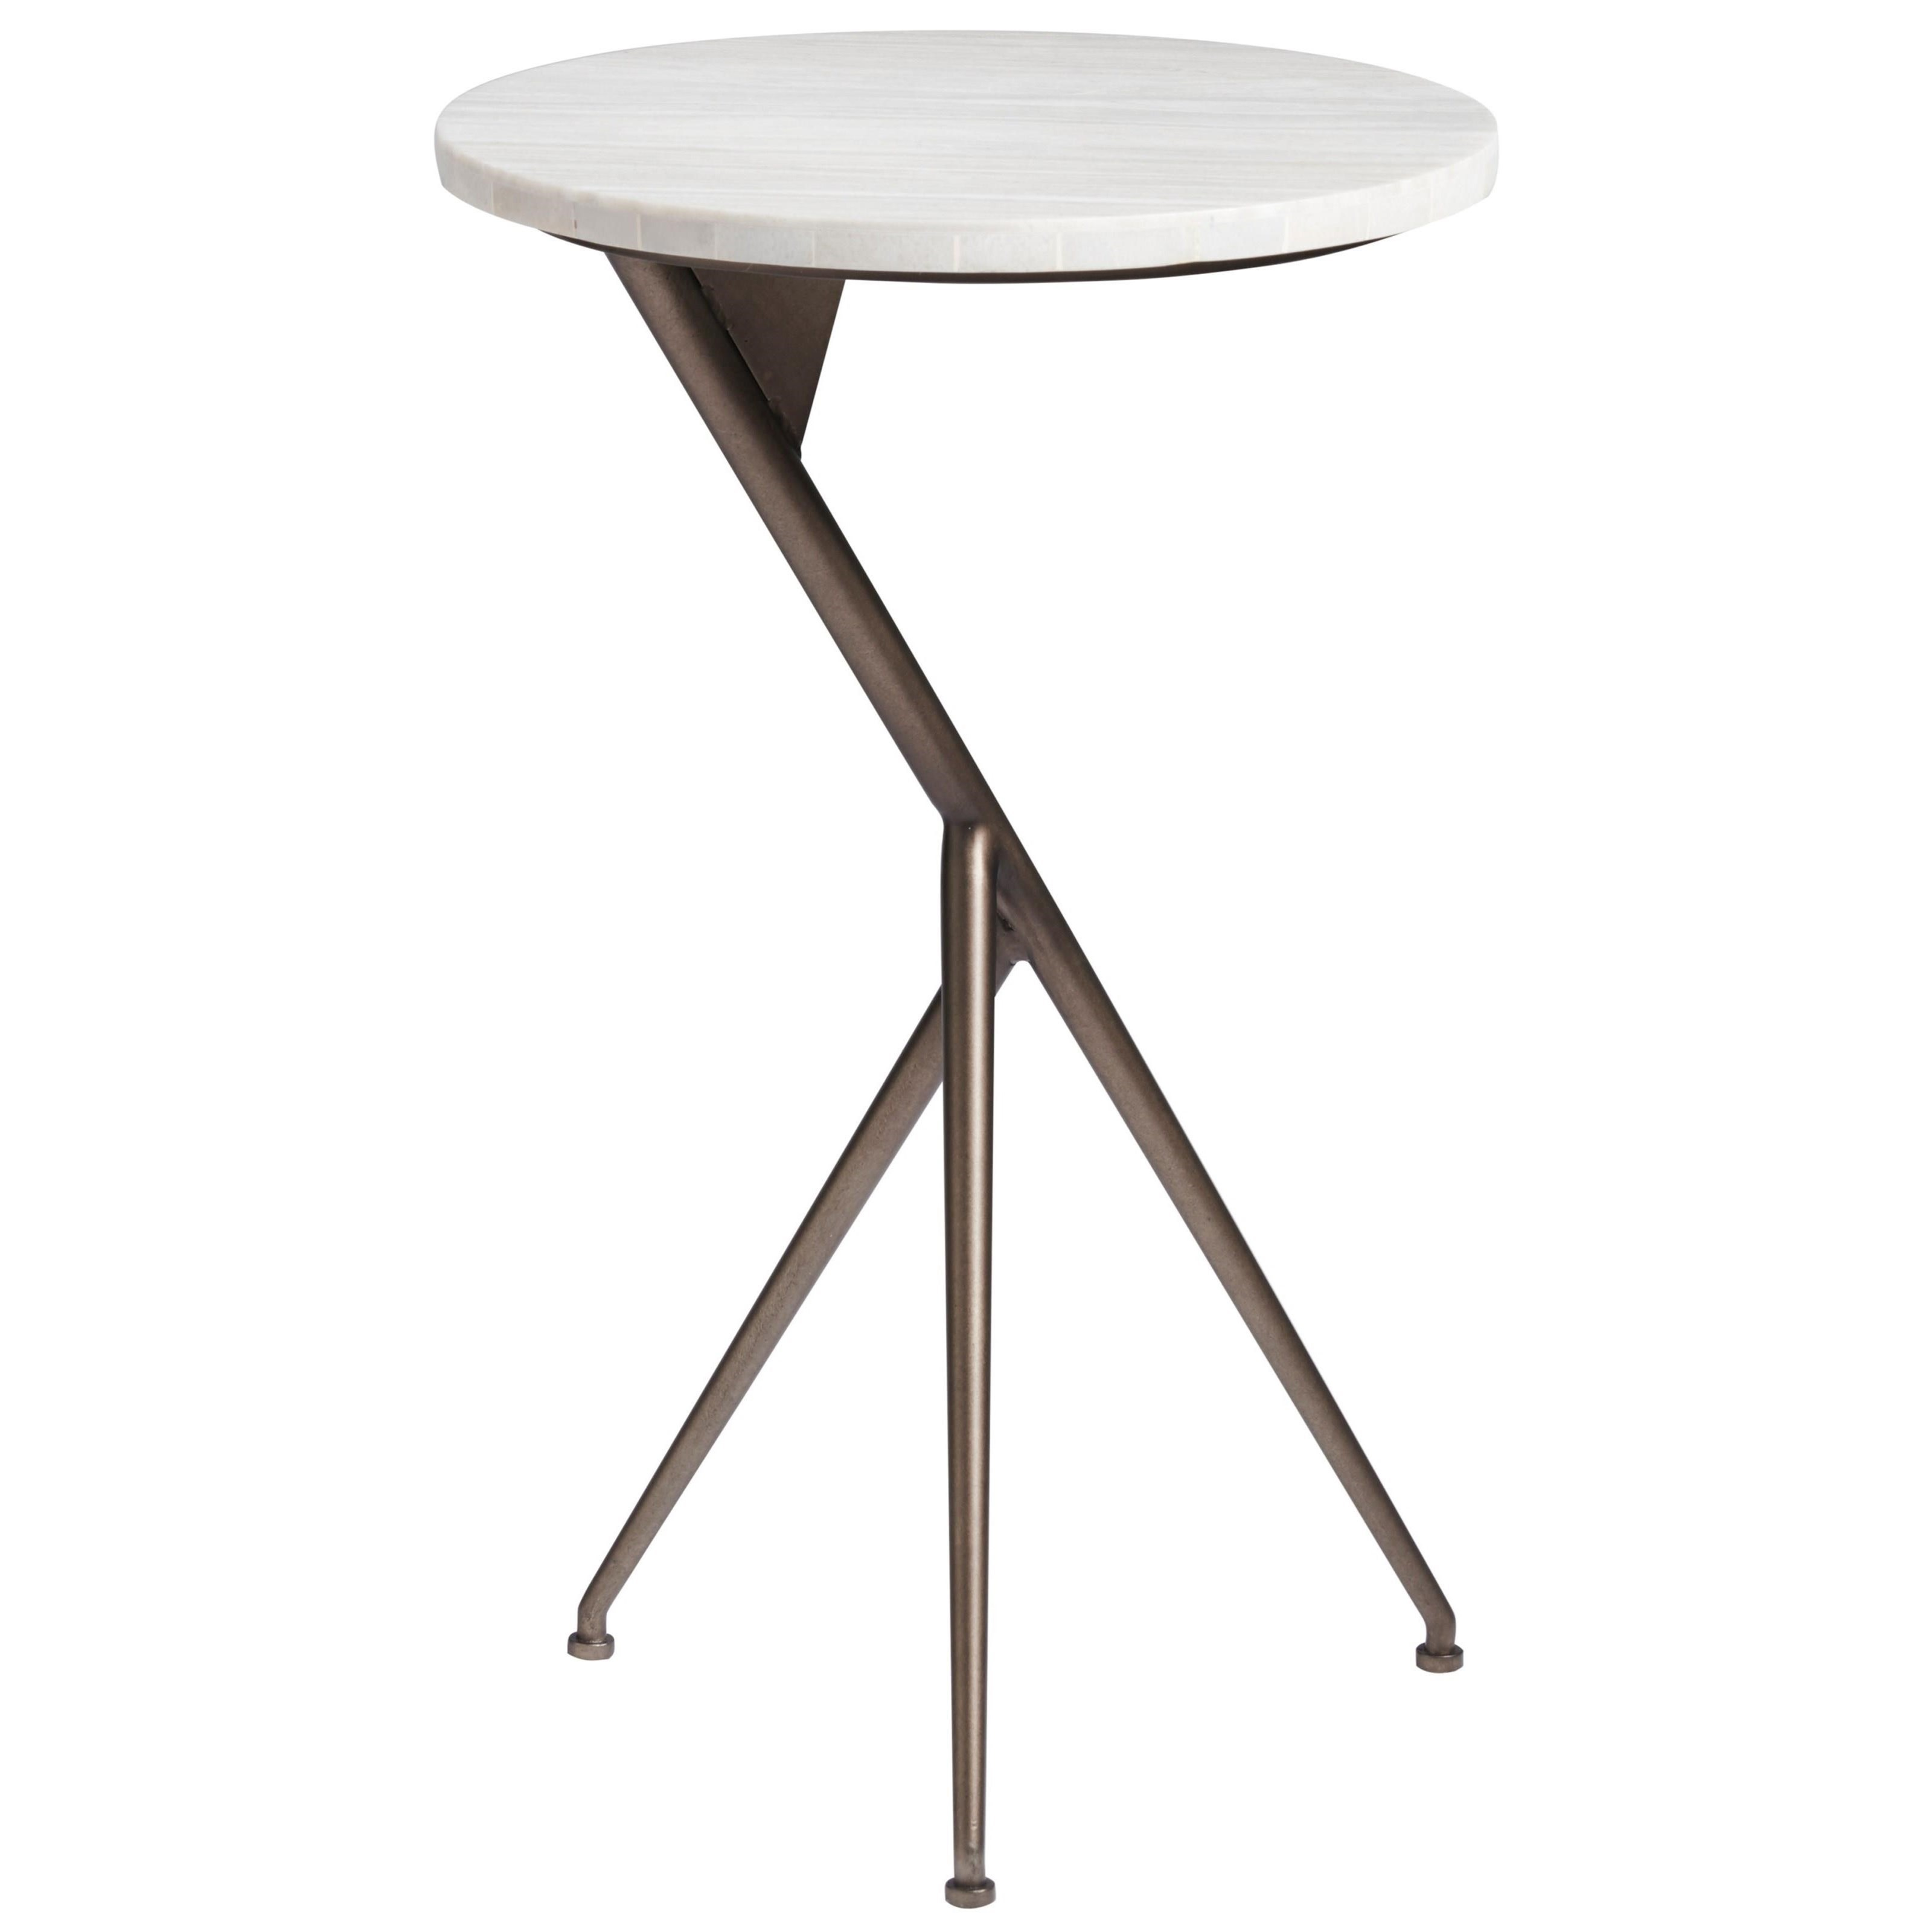 Curated Oslo Round End Table by Universal at Baer's Furniture